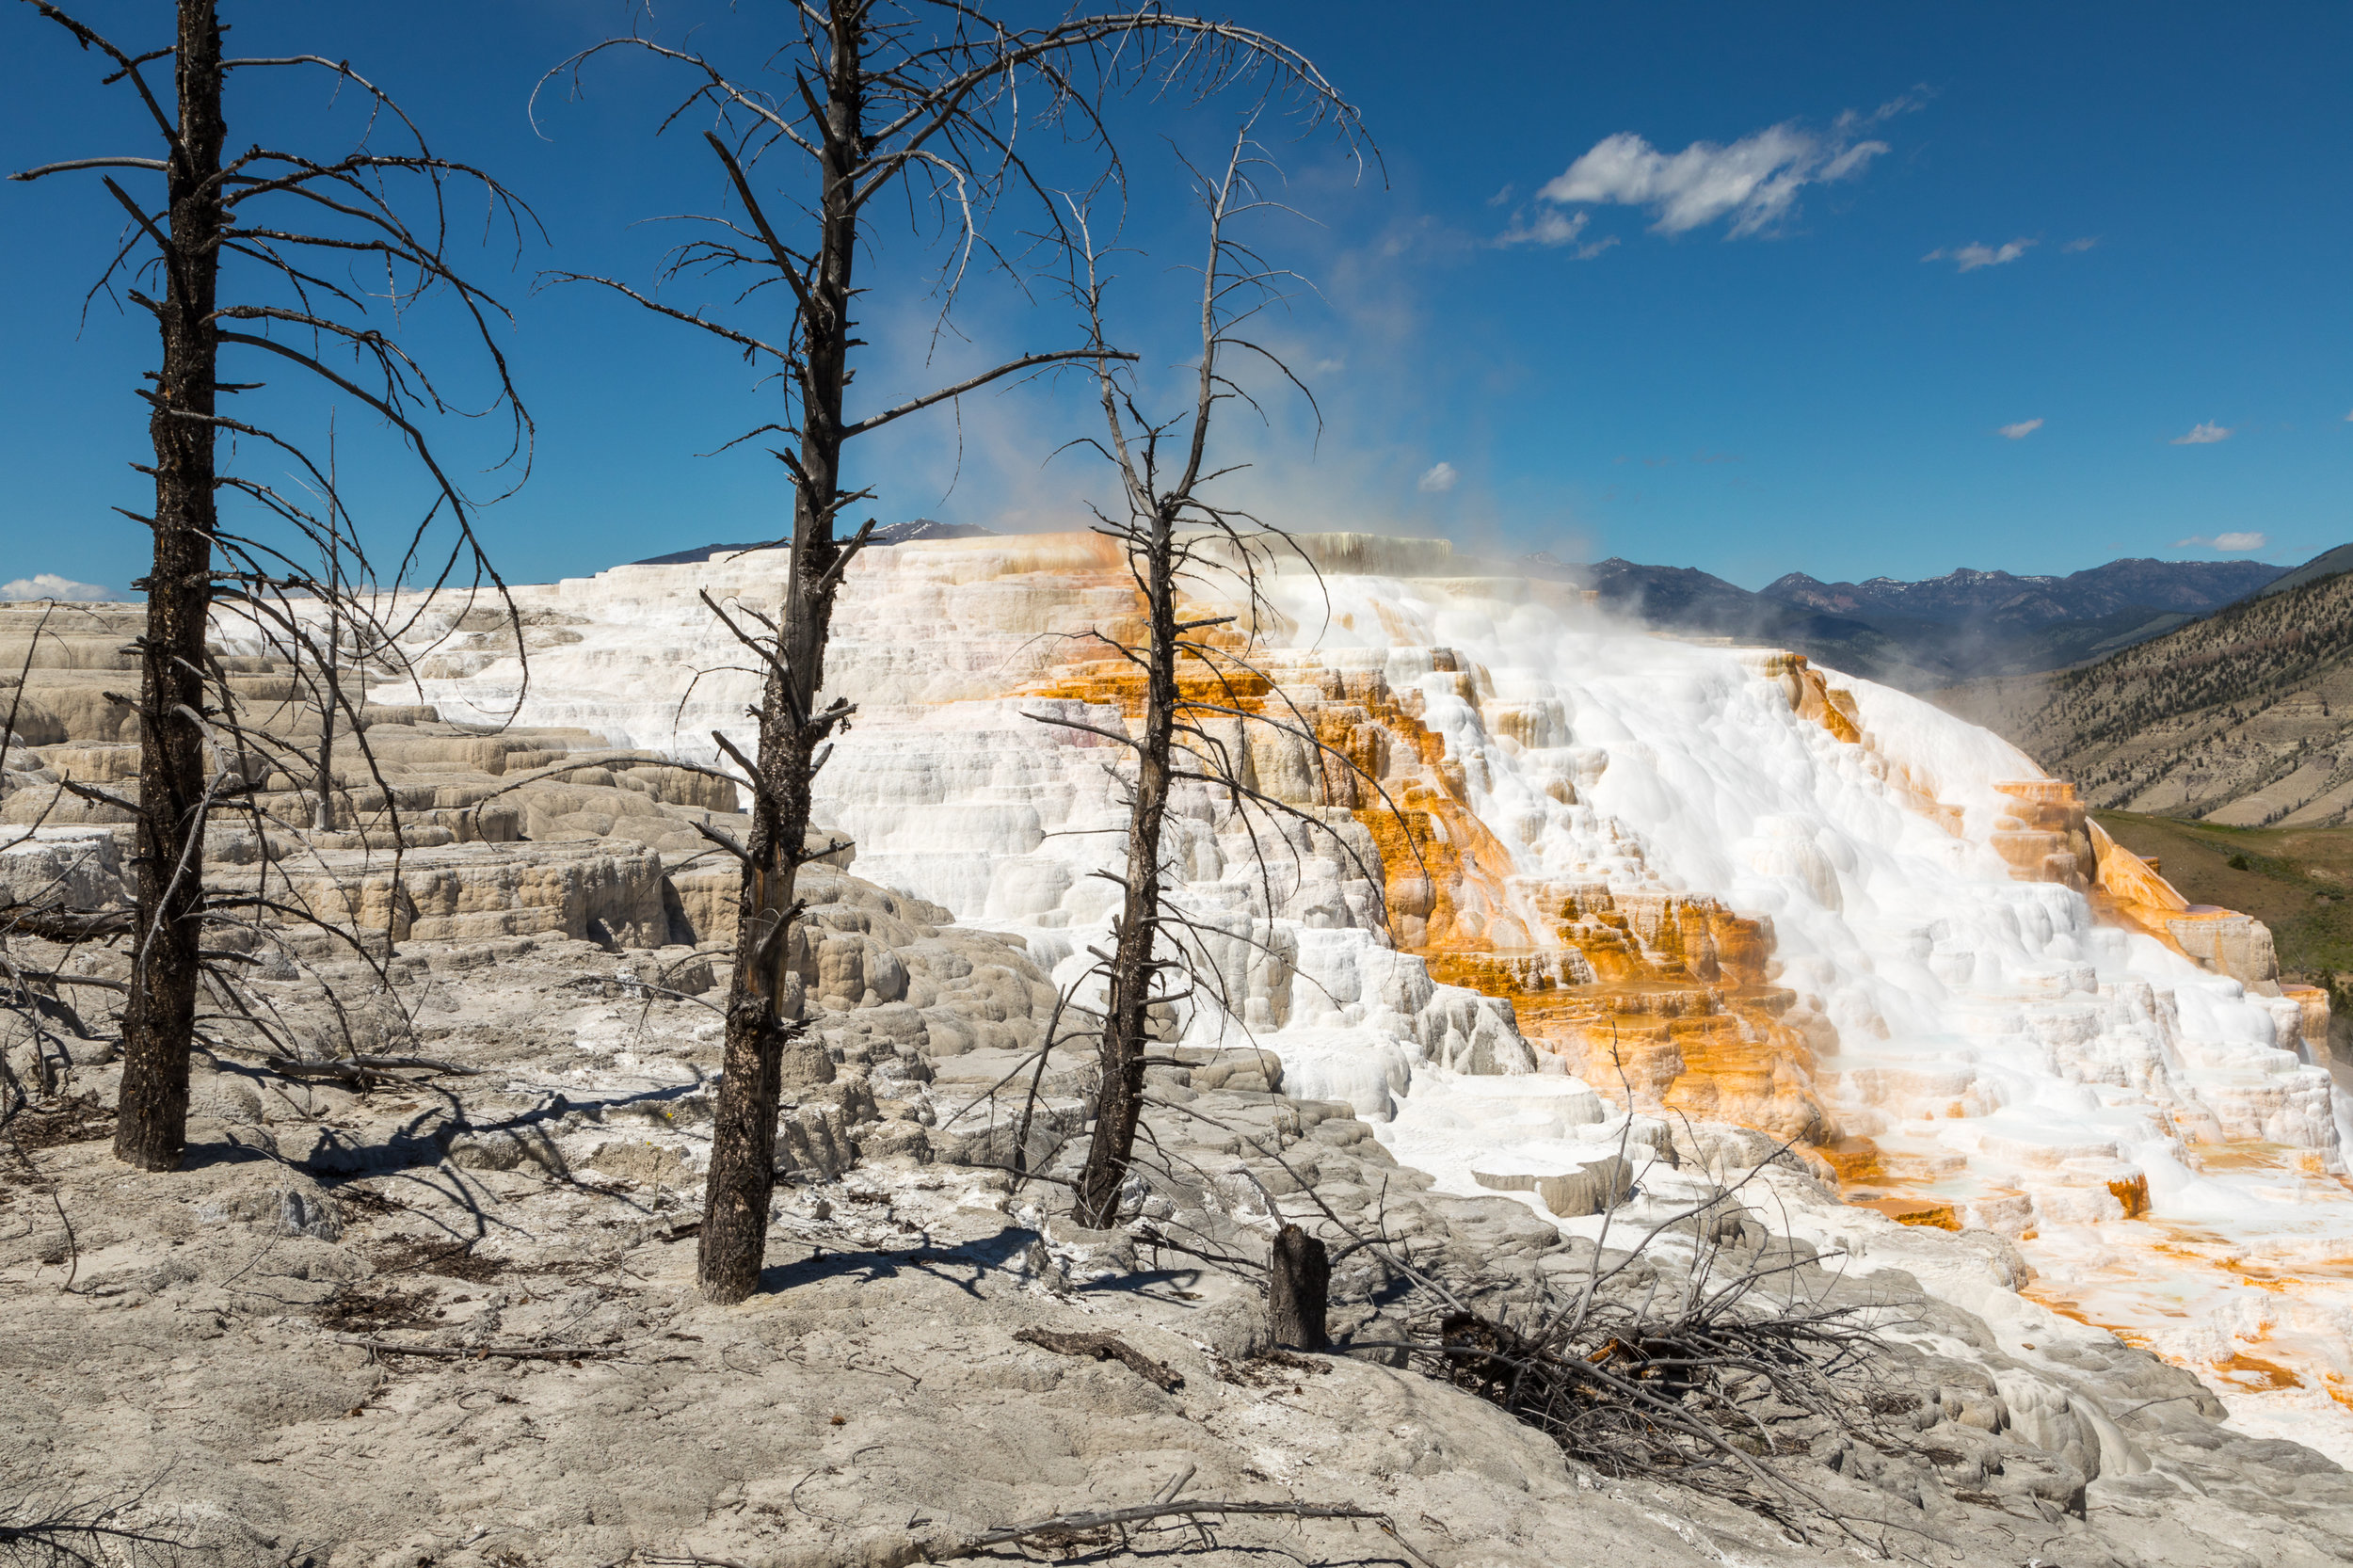 Mammoth Hot Springs, Yellowstone National Park, Image # 7419